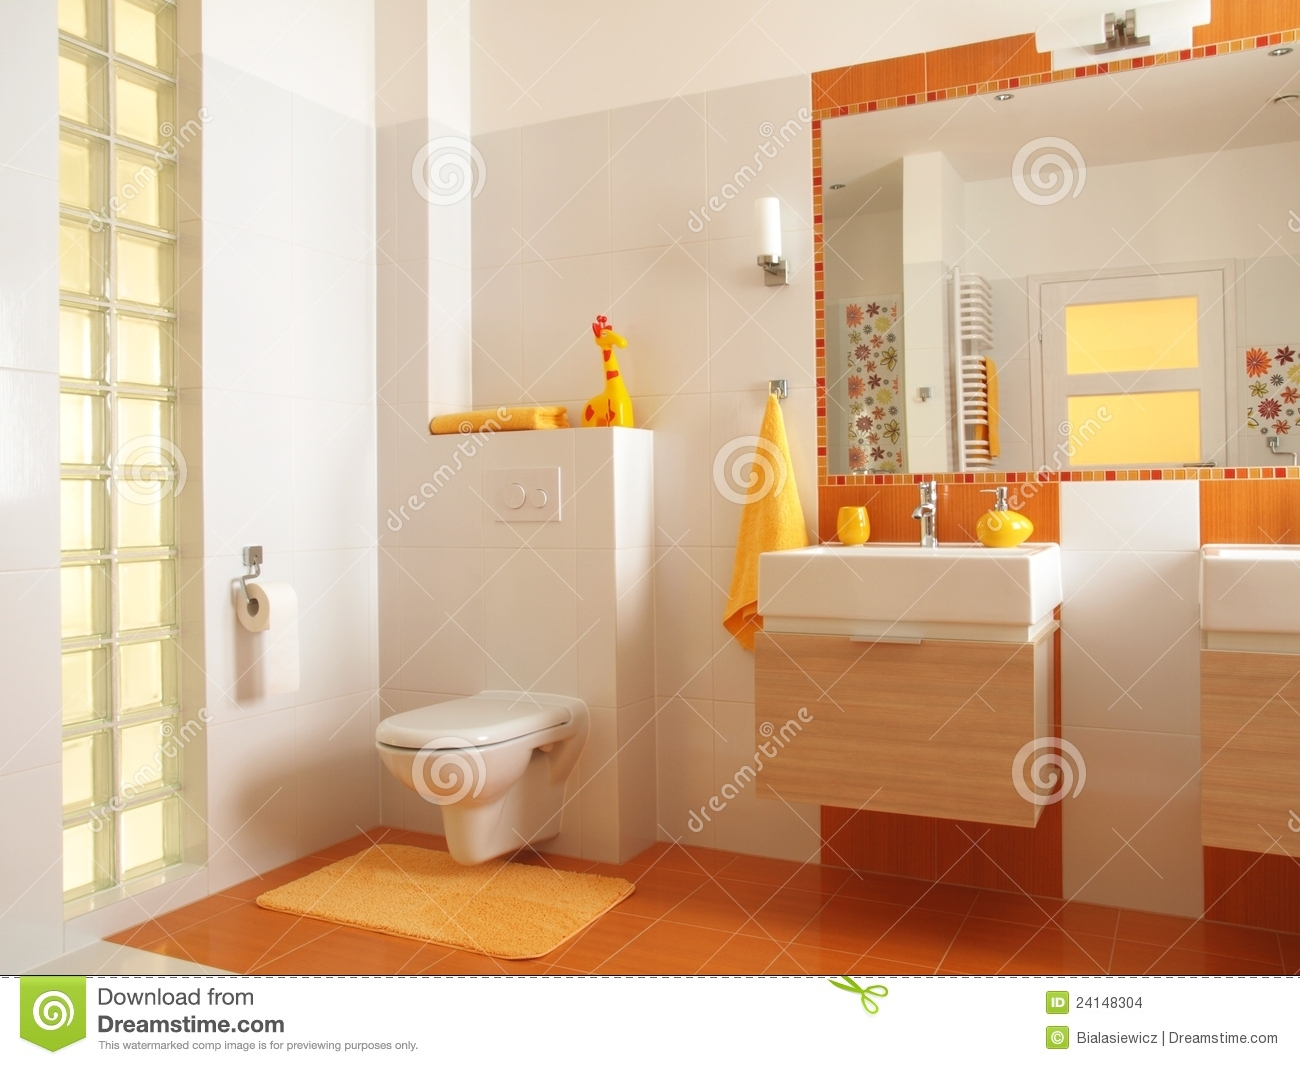 Salle De Bain Toilette Colorful Children Bathroom With Toilet Stock Images